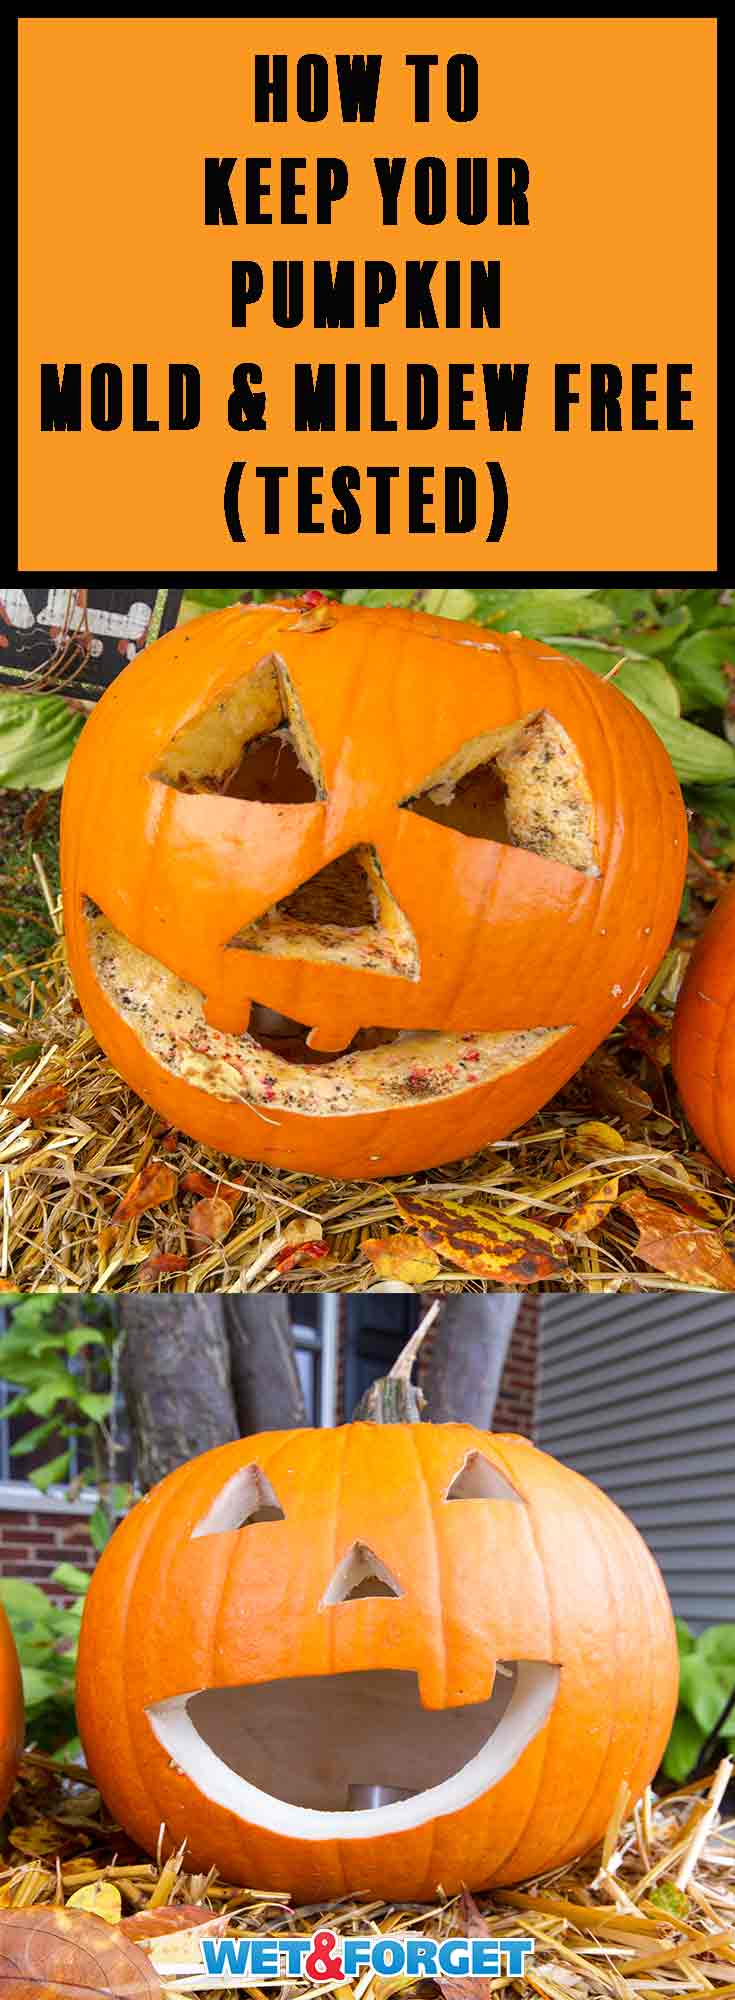 Don't let your pumpkin rot out early this year! Use the best preservation method to keep your pumpkin mold and mildew free for a month!